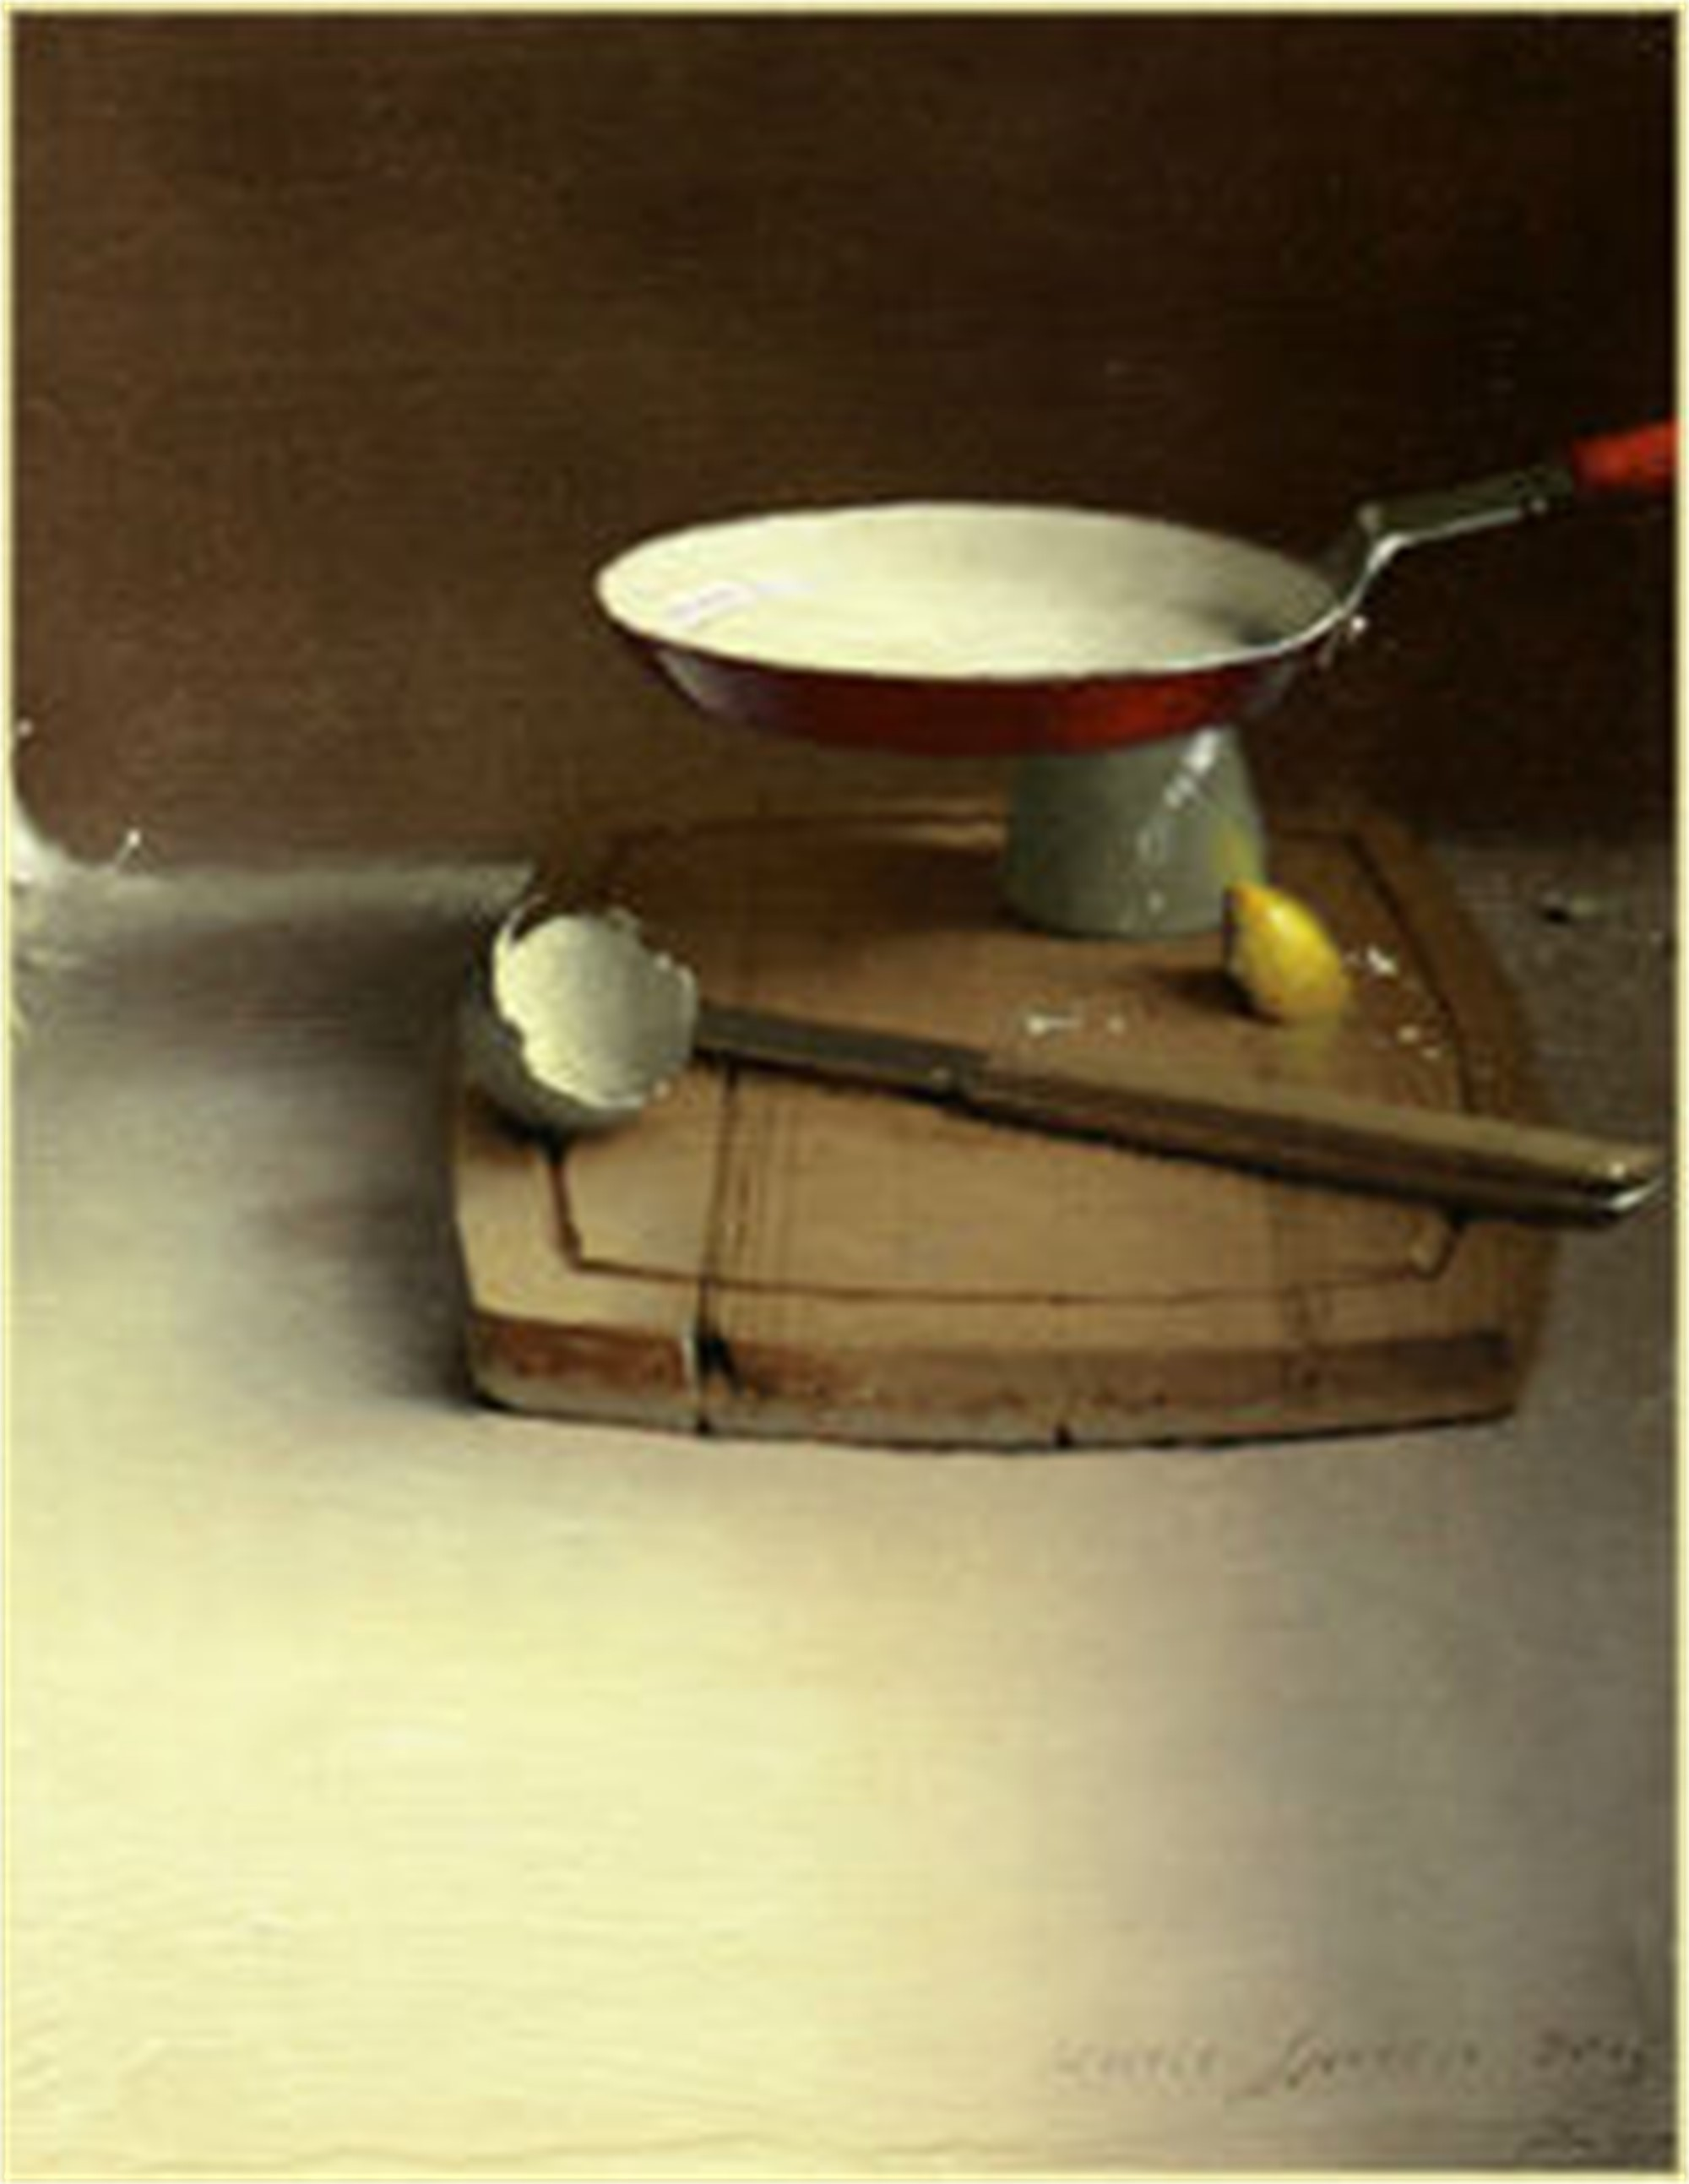 Red Pan and Cutting Board by Daniel Sprick